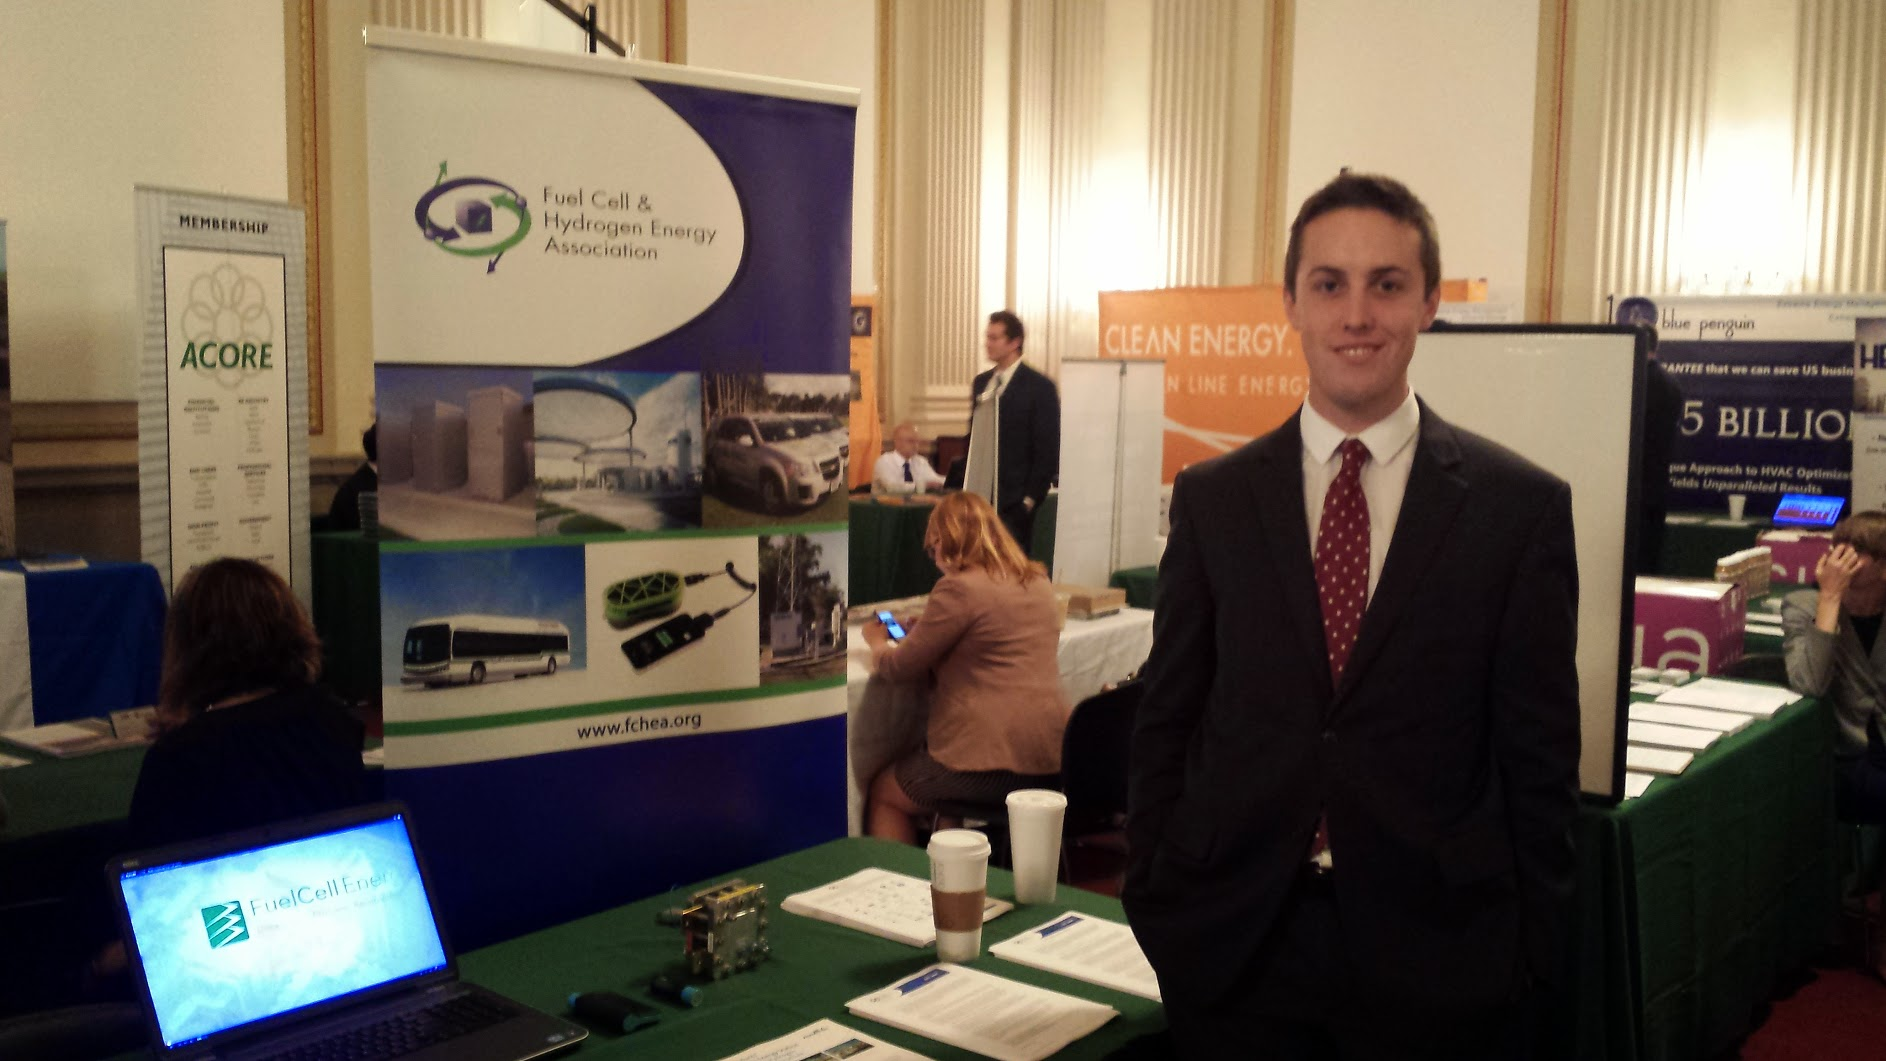 FCHEA's booth at the Congressional Renewable Energy and Energy Efficiency EXPO on Capitol Hill